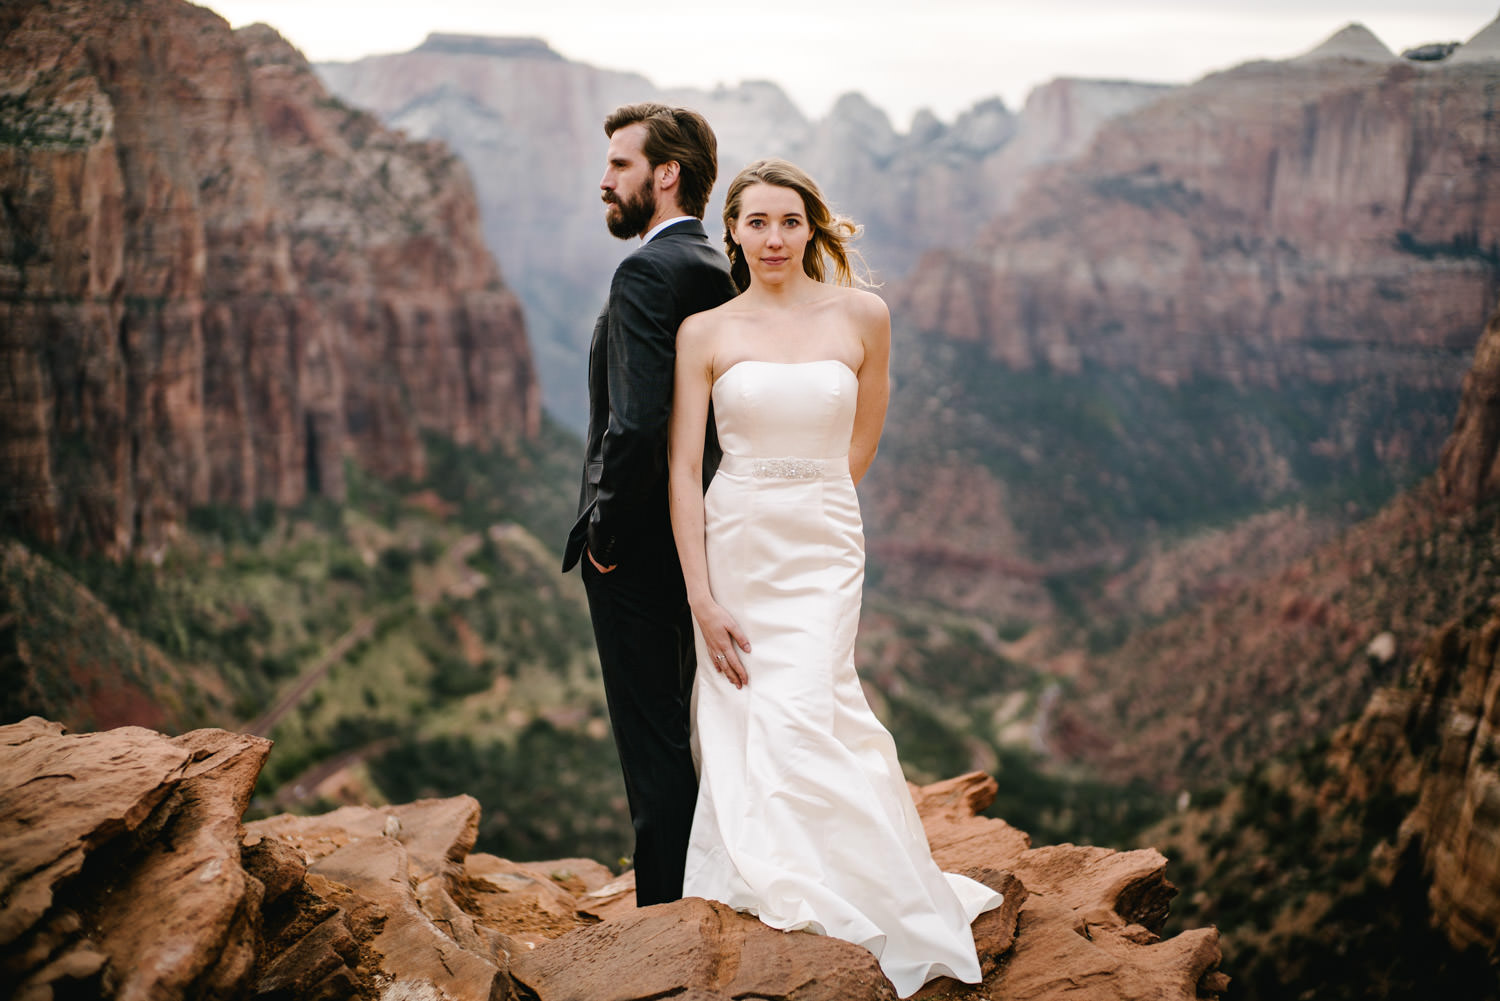 zionnationalpark_utah_destinationweddingphotographer_austendiamondphotography-5